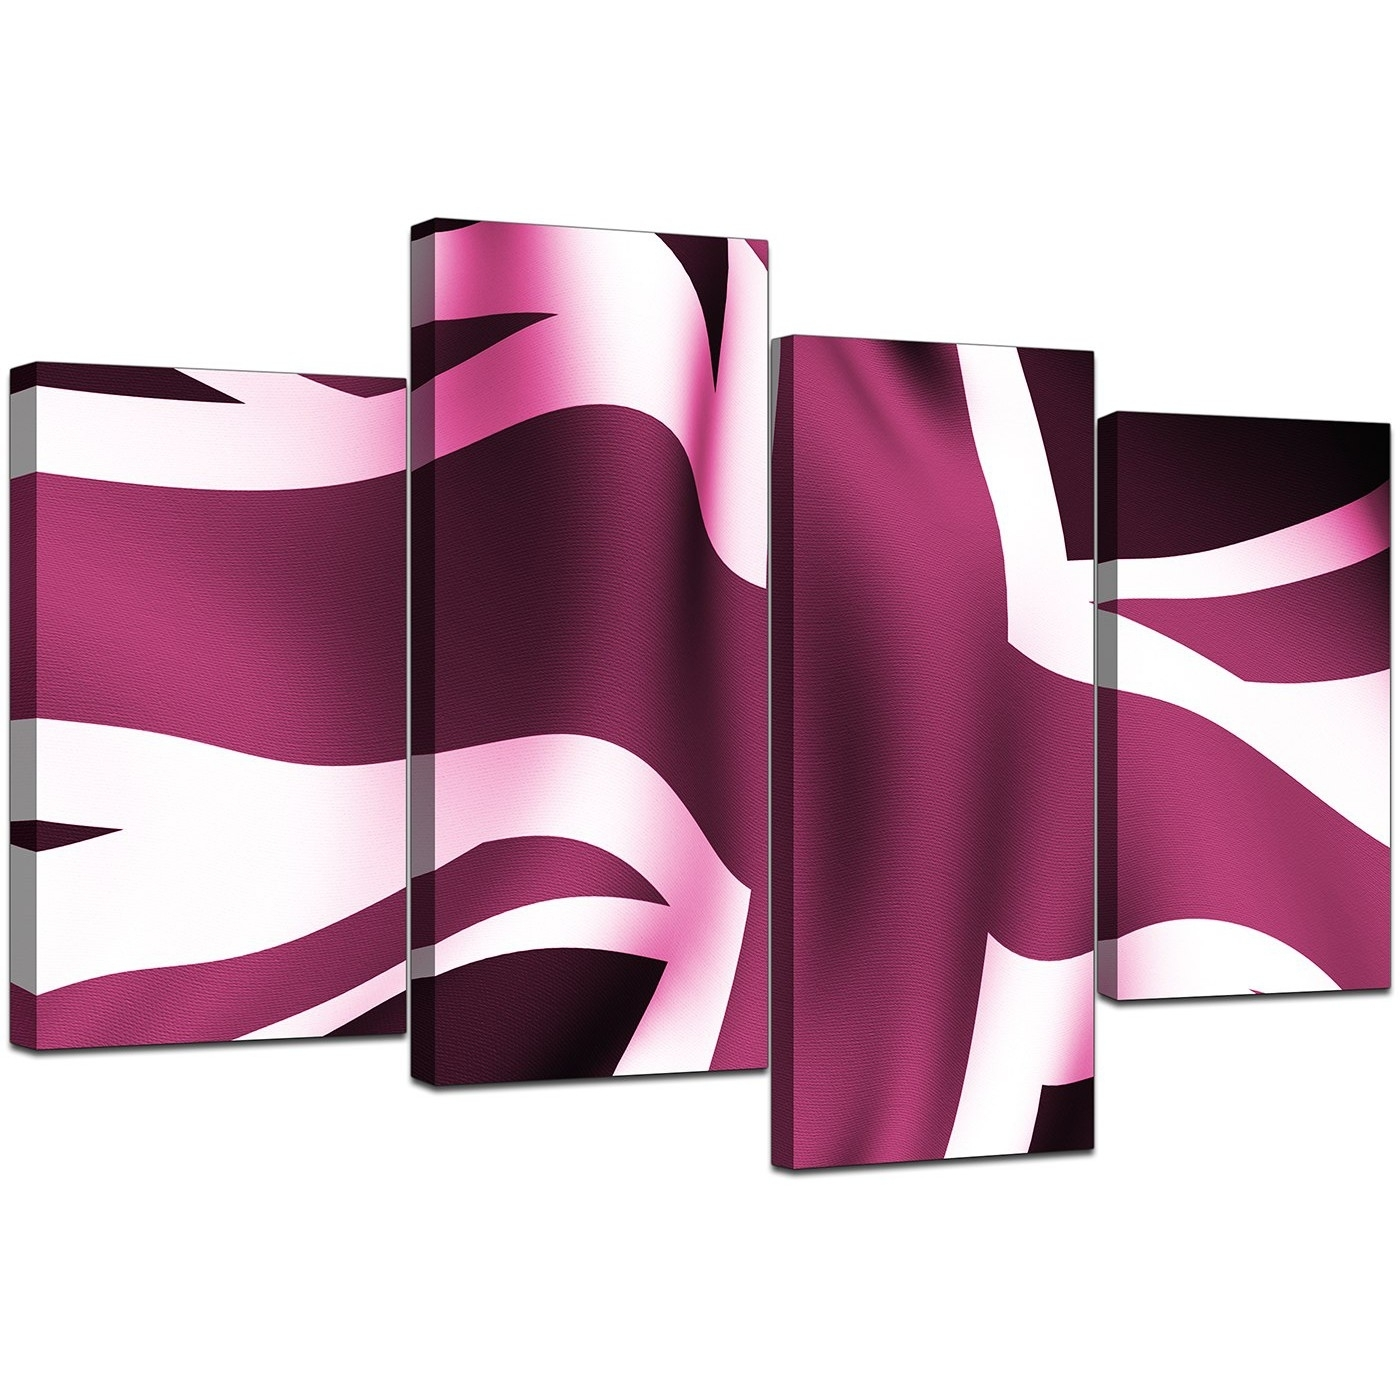 Modern Union Jack Canvas Prints In Plum – For Bedroom Regarding Most Recent Union Jack Canvas Wall Art (View 7 of 15)